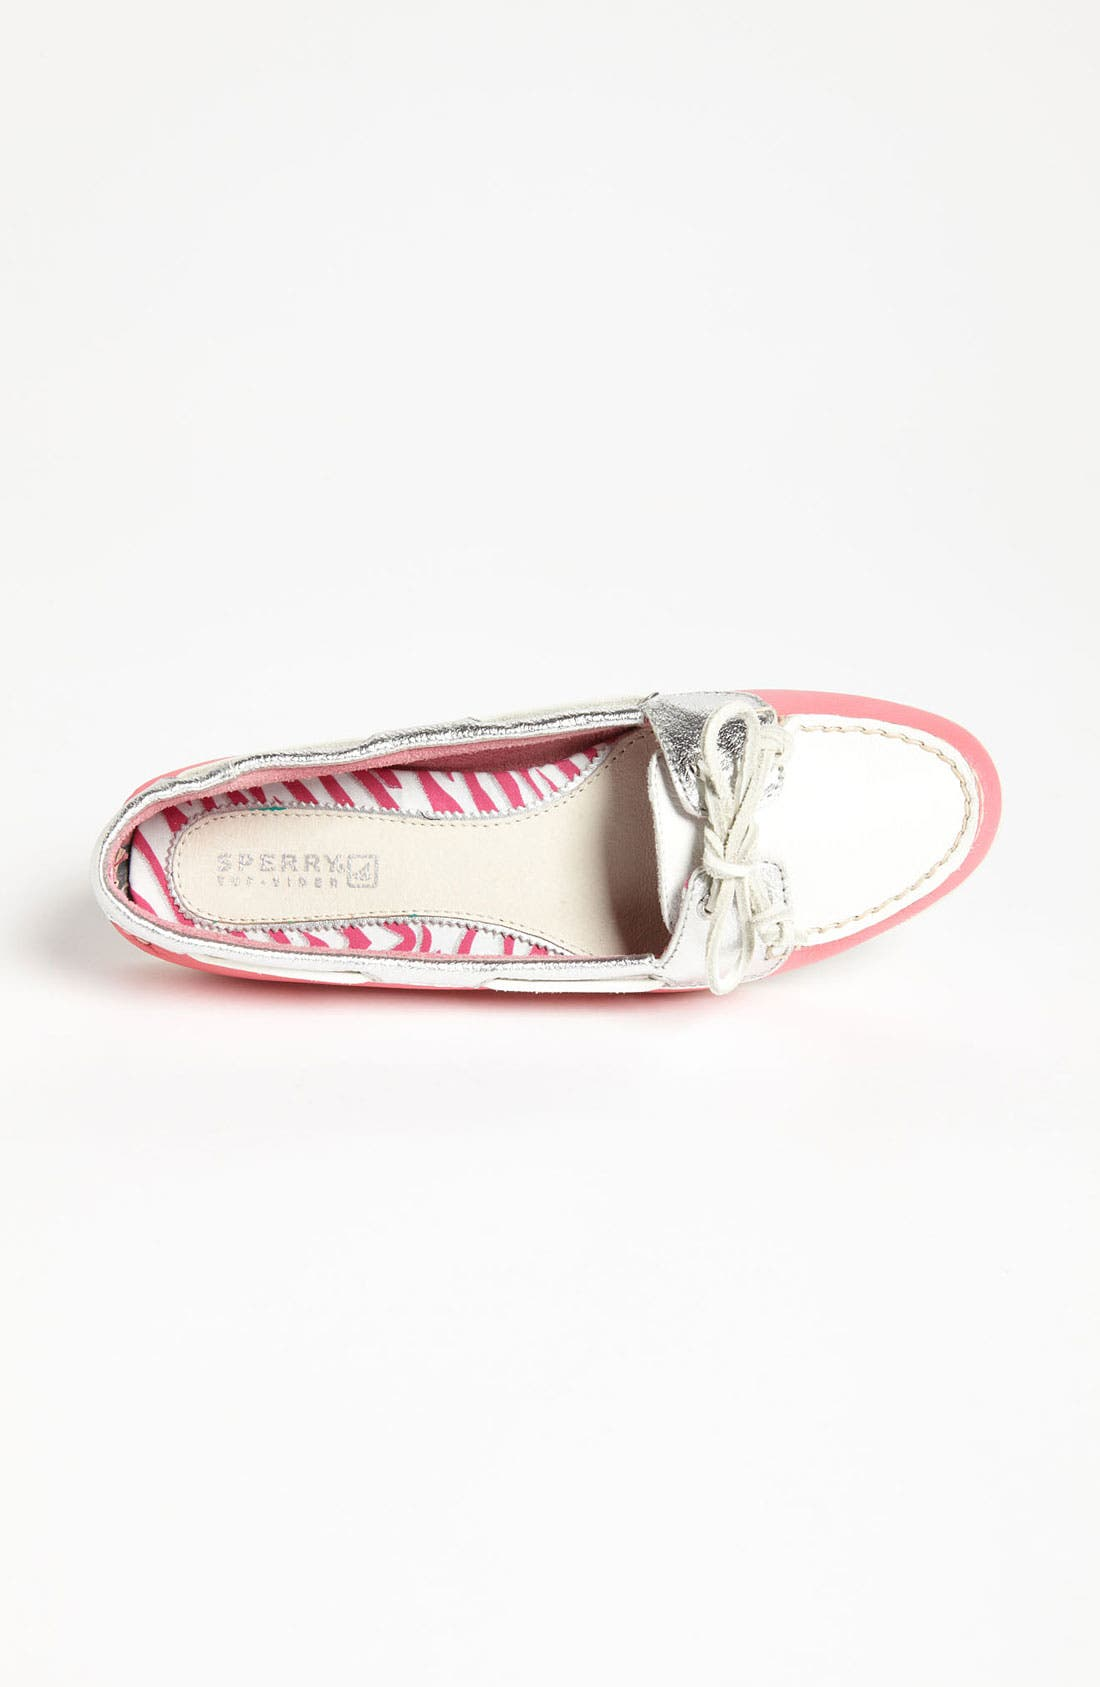 Alternate Image 3  - Sperry Top-Sider® 'Audrey' Boat Shoe